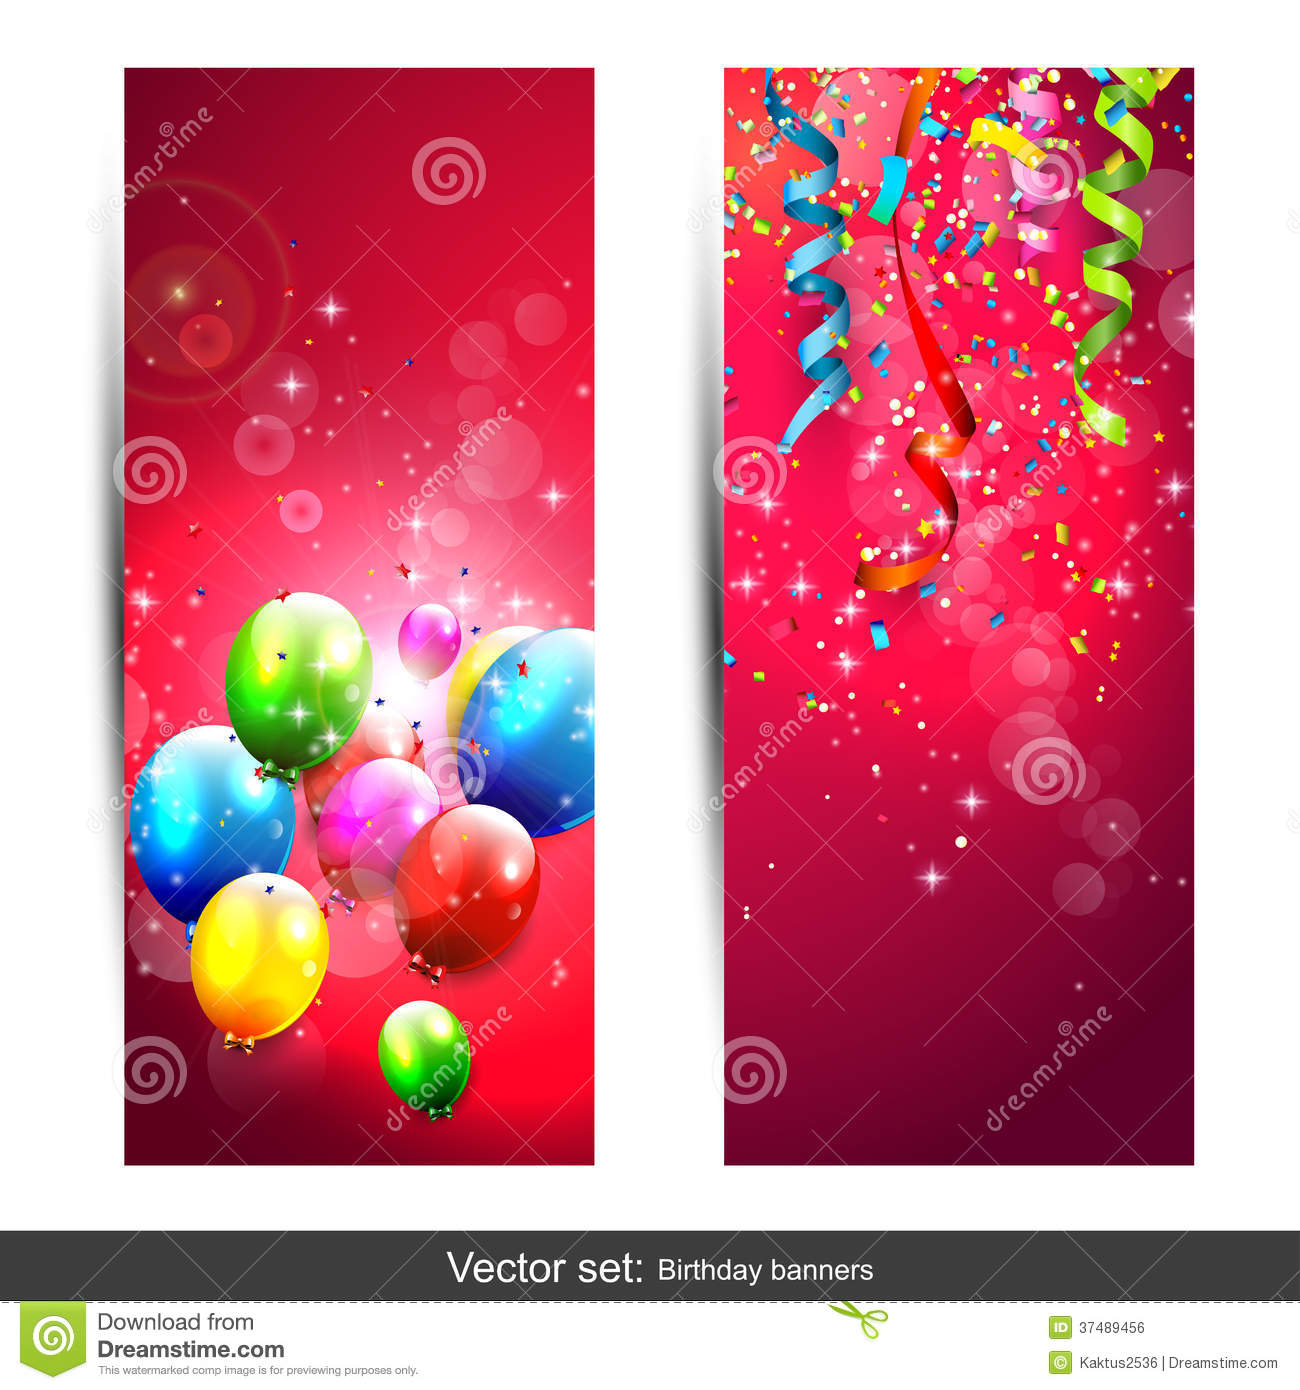 Birthday banners stock vector. Illustration of carnival ...